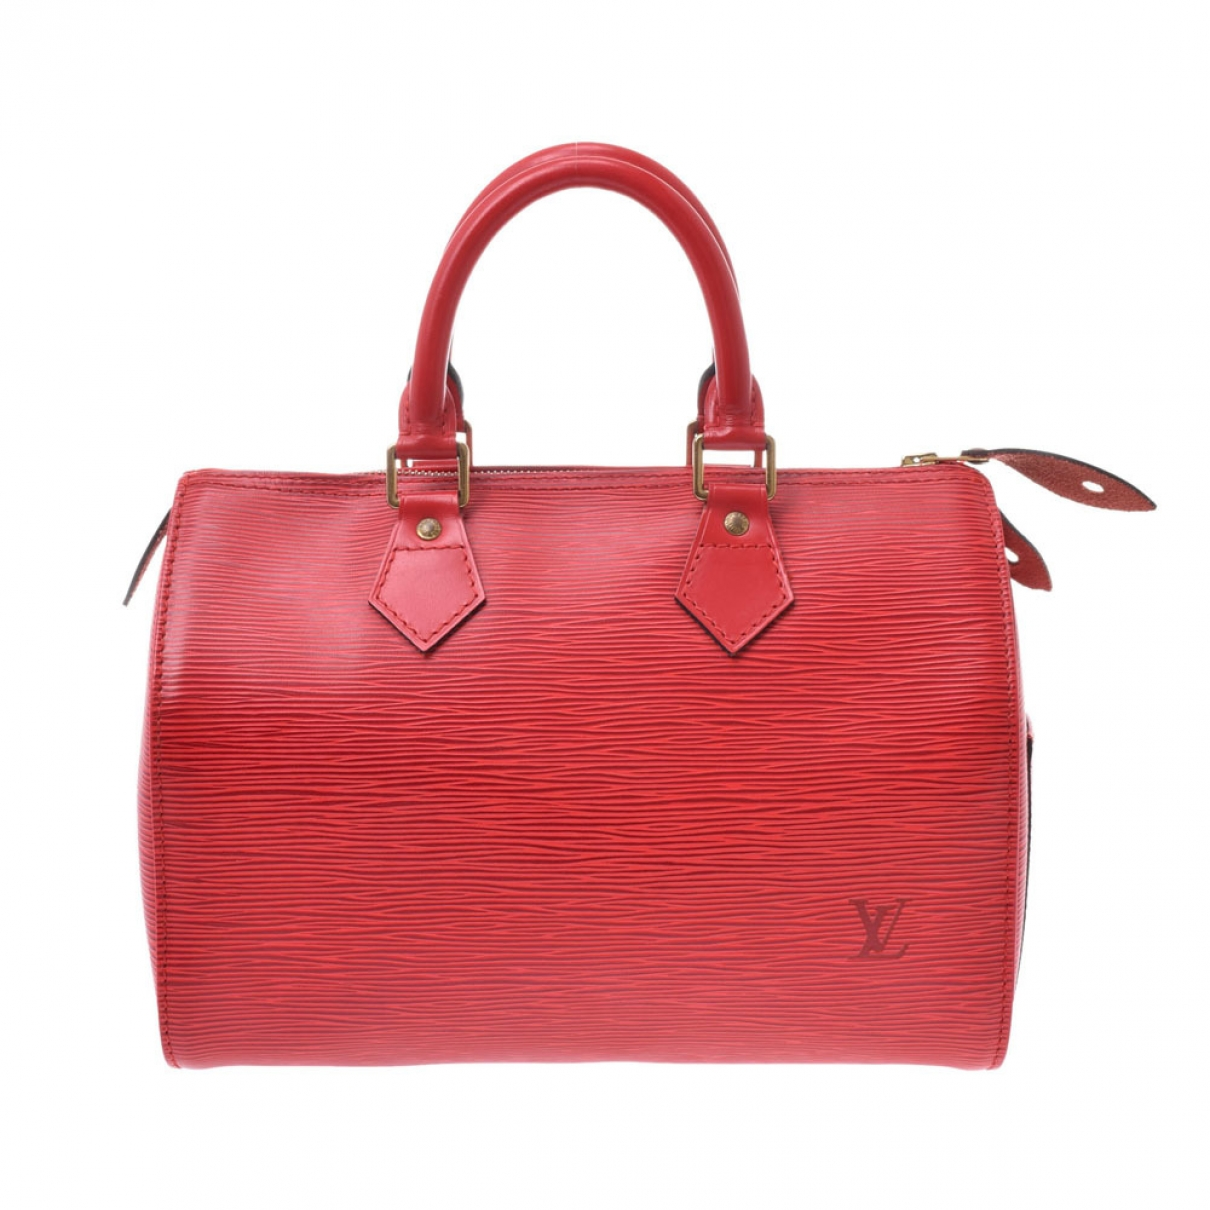 Louis Vuitton Speedy Red Leather handbag for Women \N